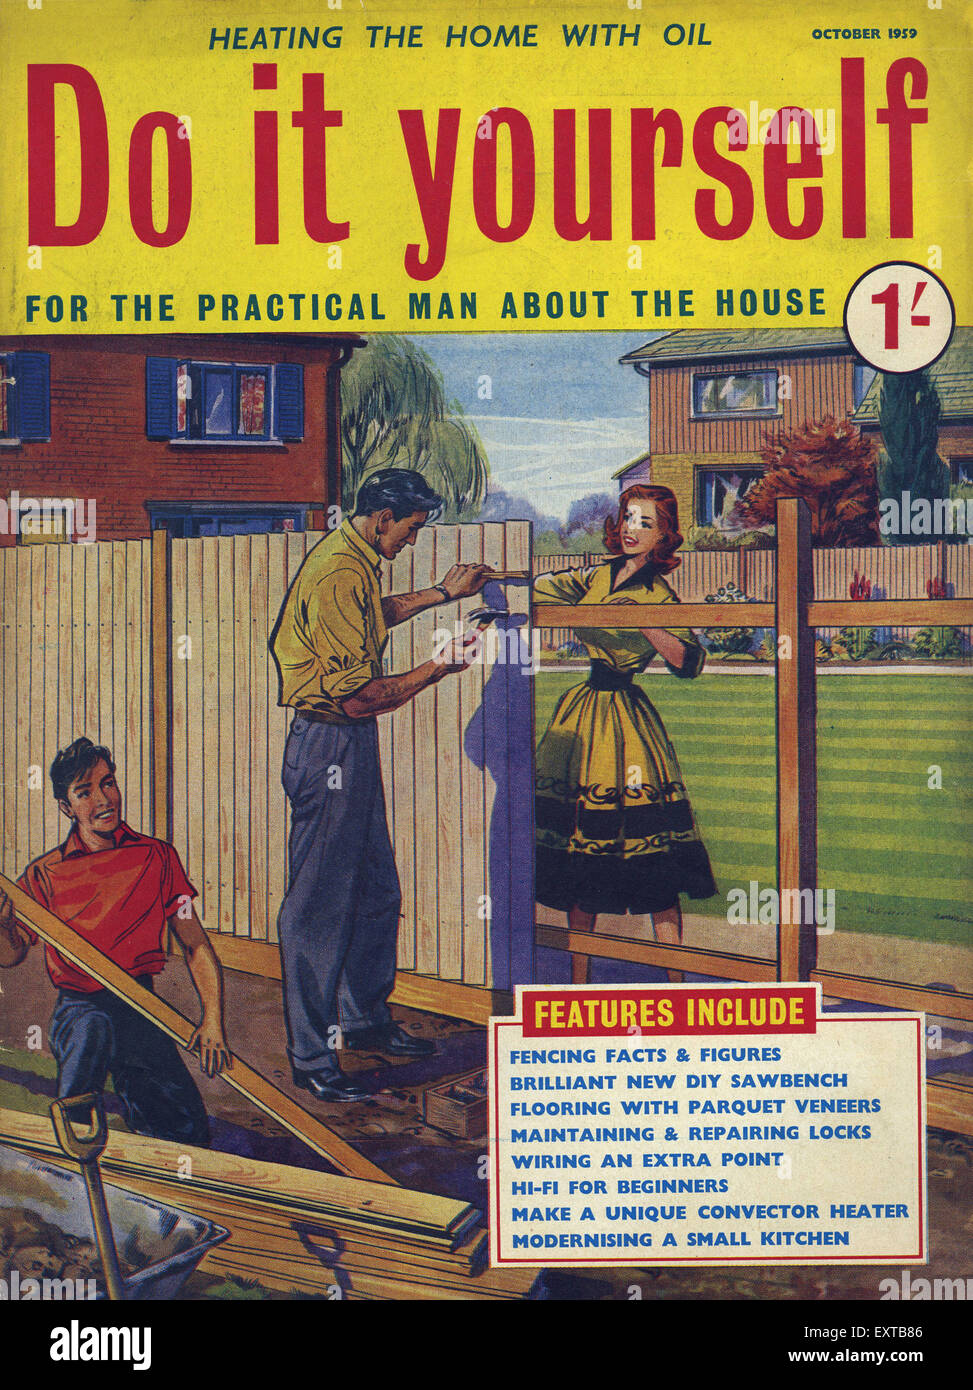 1950s uk do it yourself magazine cover stock photo 85358230 alamy 1950s uk do it yourself magazine cover solutioingenieria Gallery